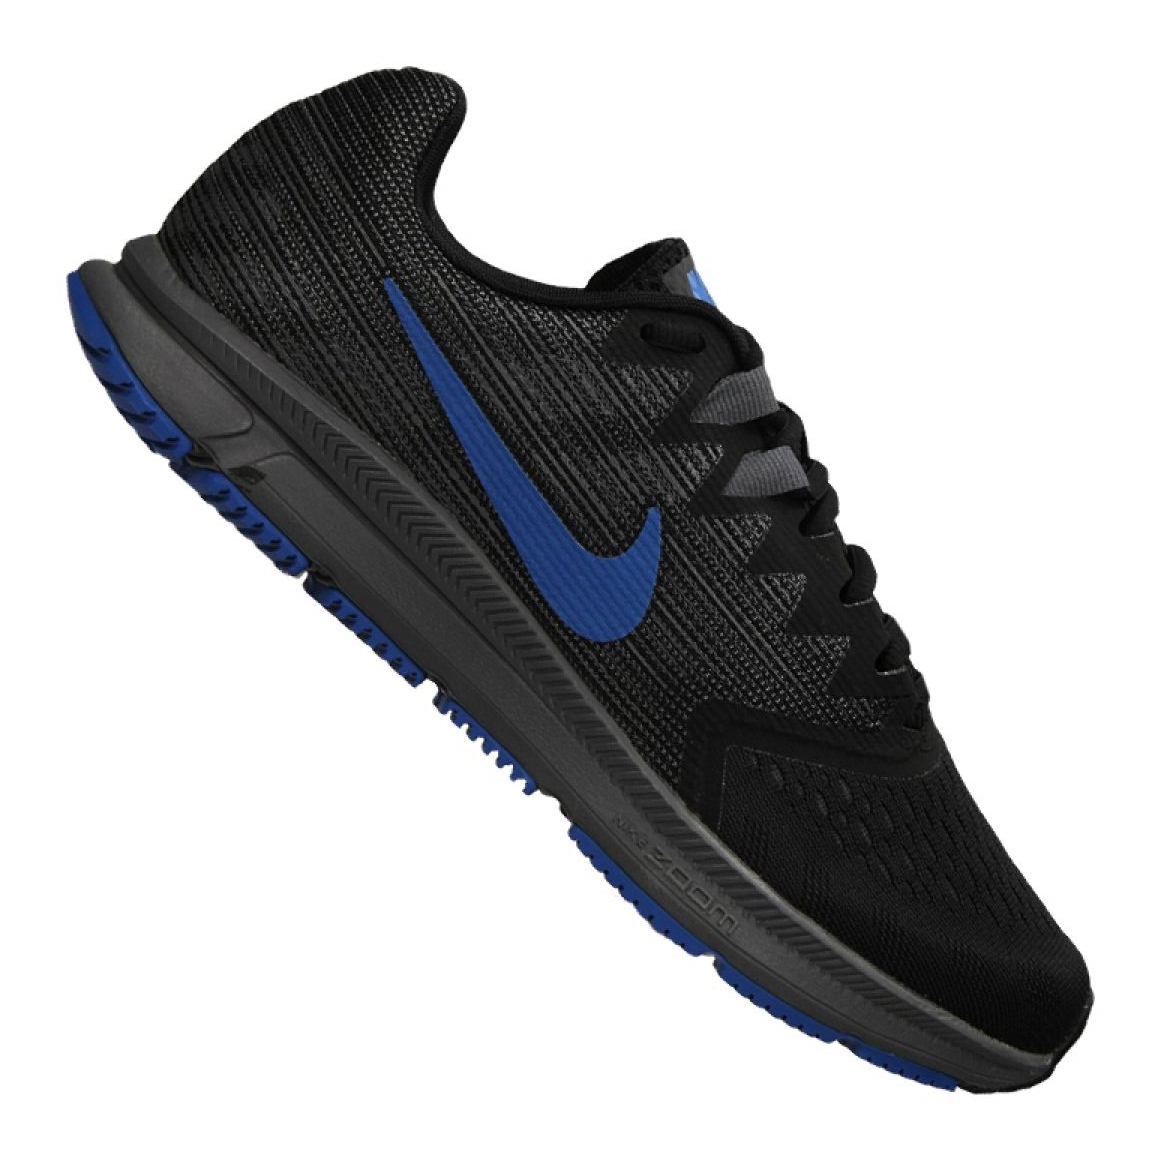 big discount large discount price reduced Nike Zoom Span 2 M 908990-012 shoes black